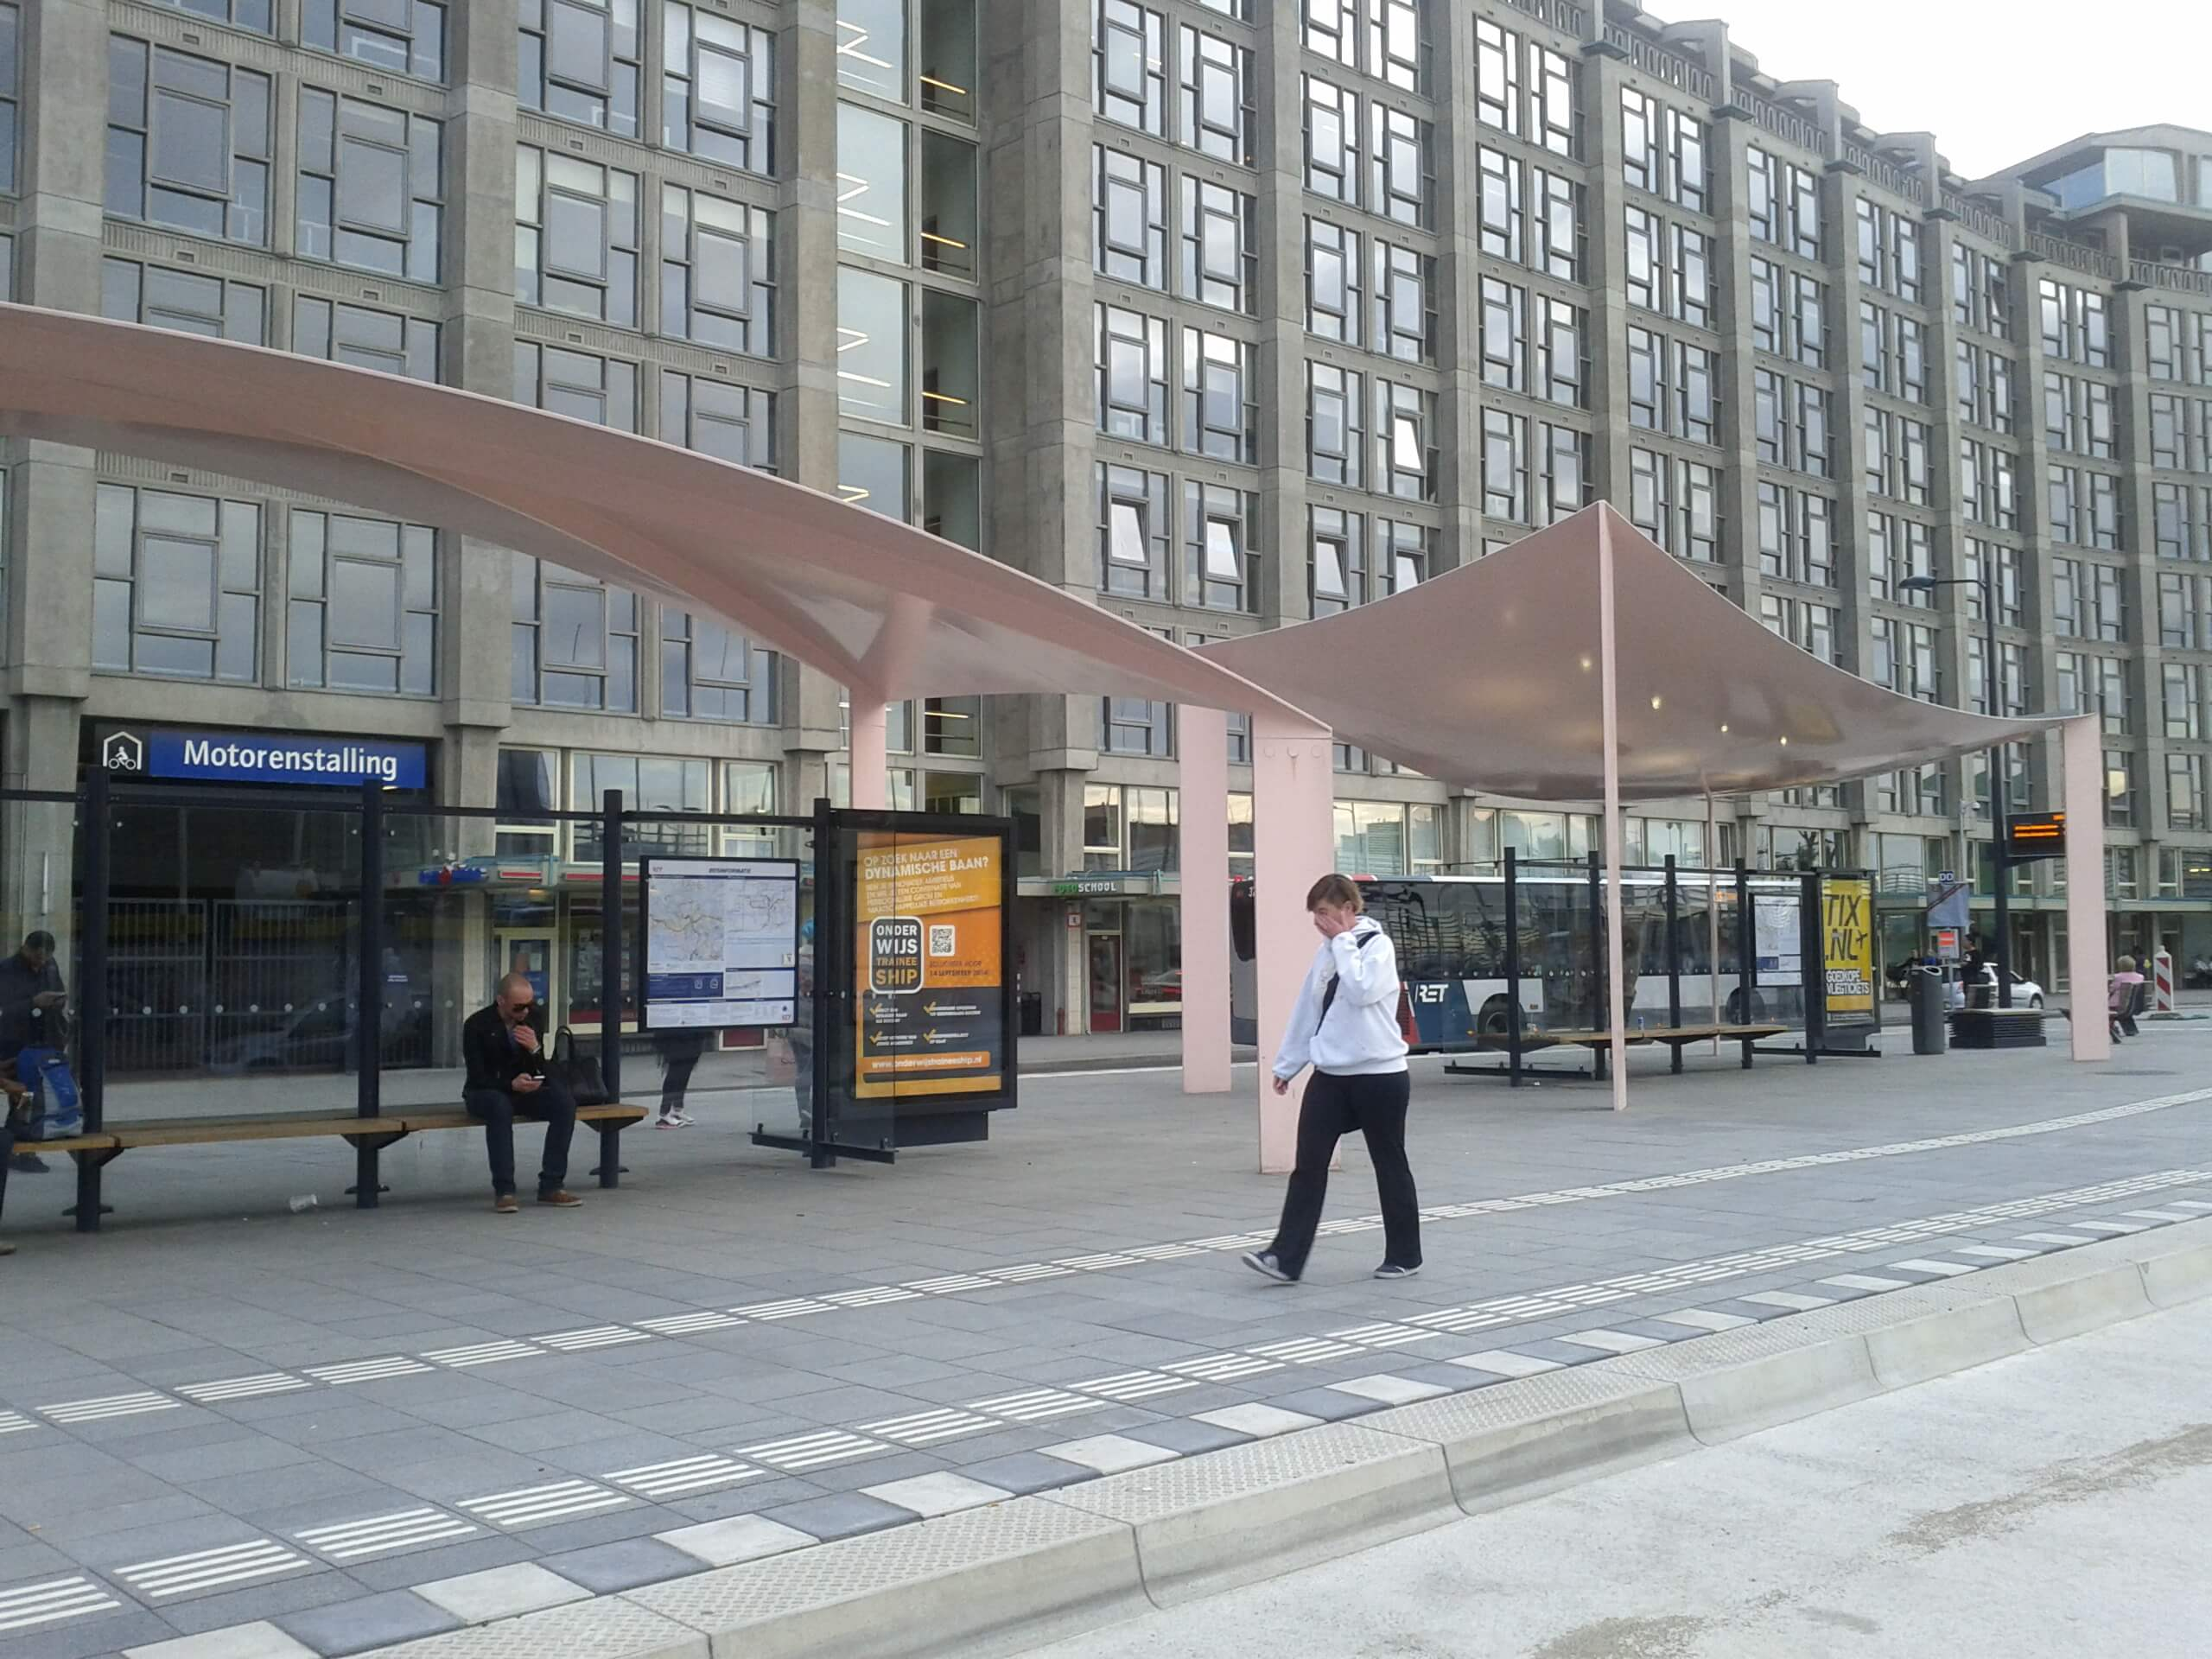 Canopies busstation